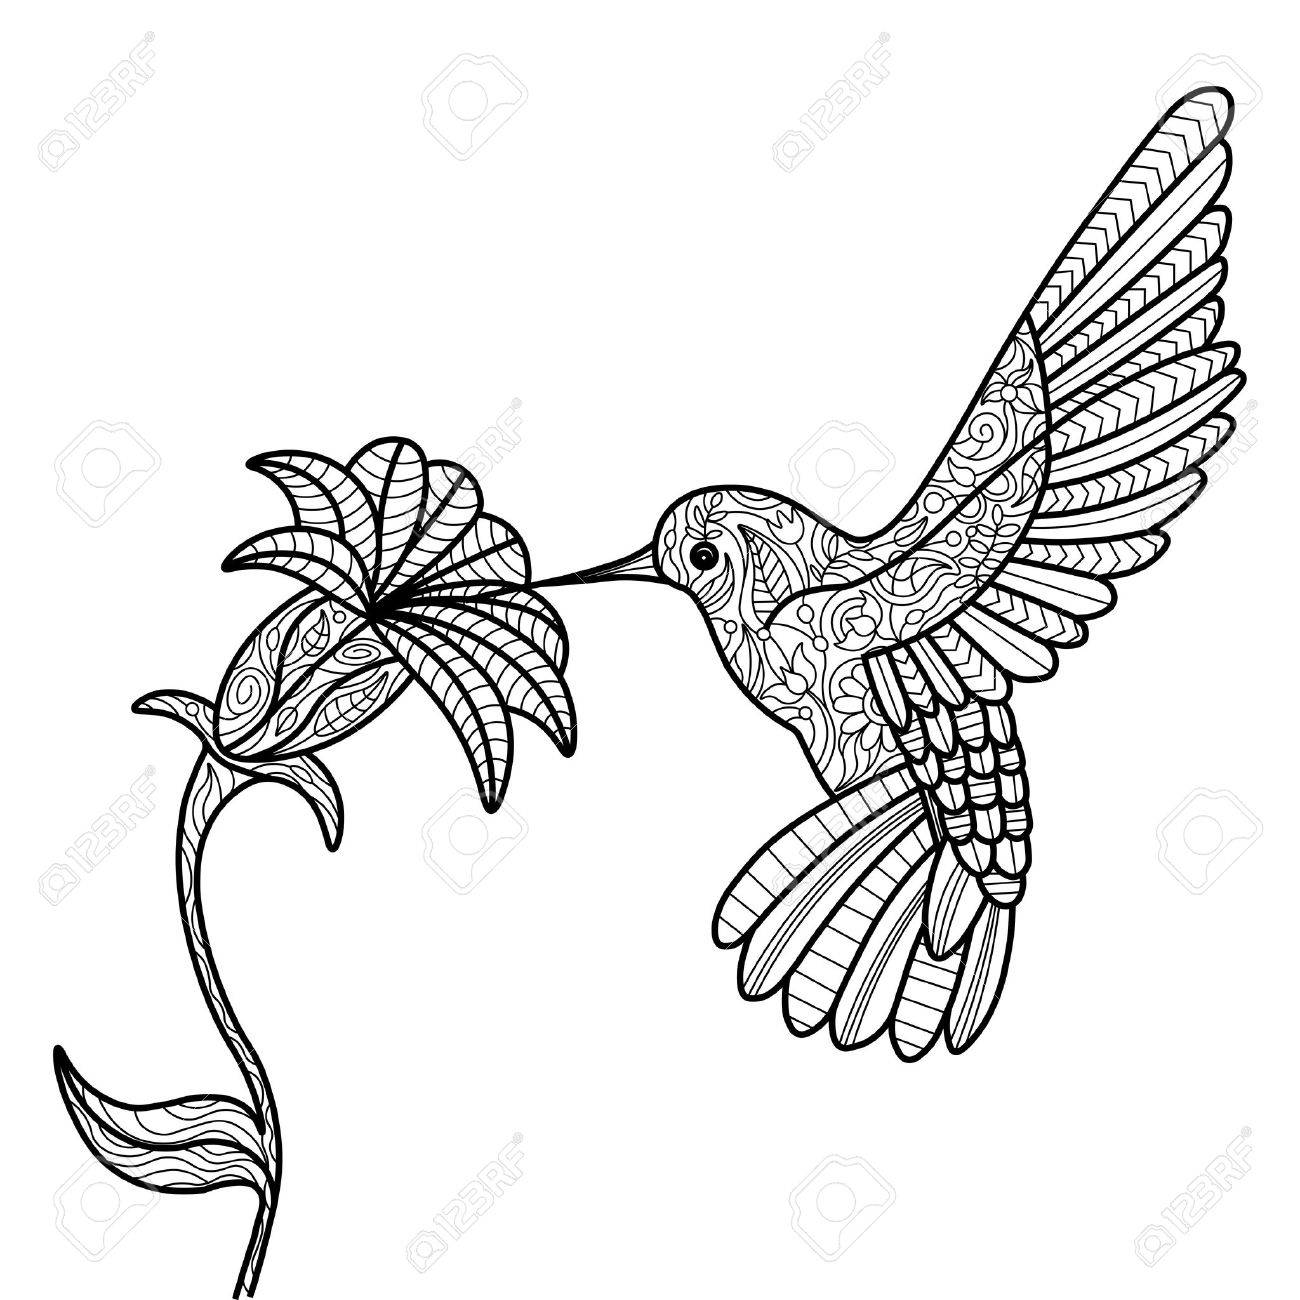 1300x1300 Hummingbird And Flower Coloring Book For Adults Vector